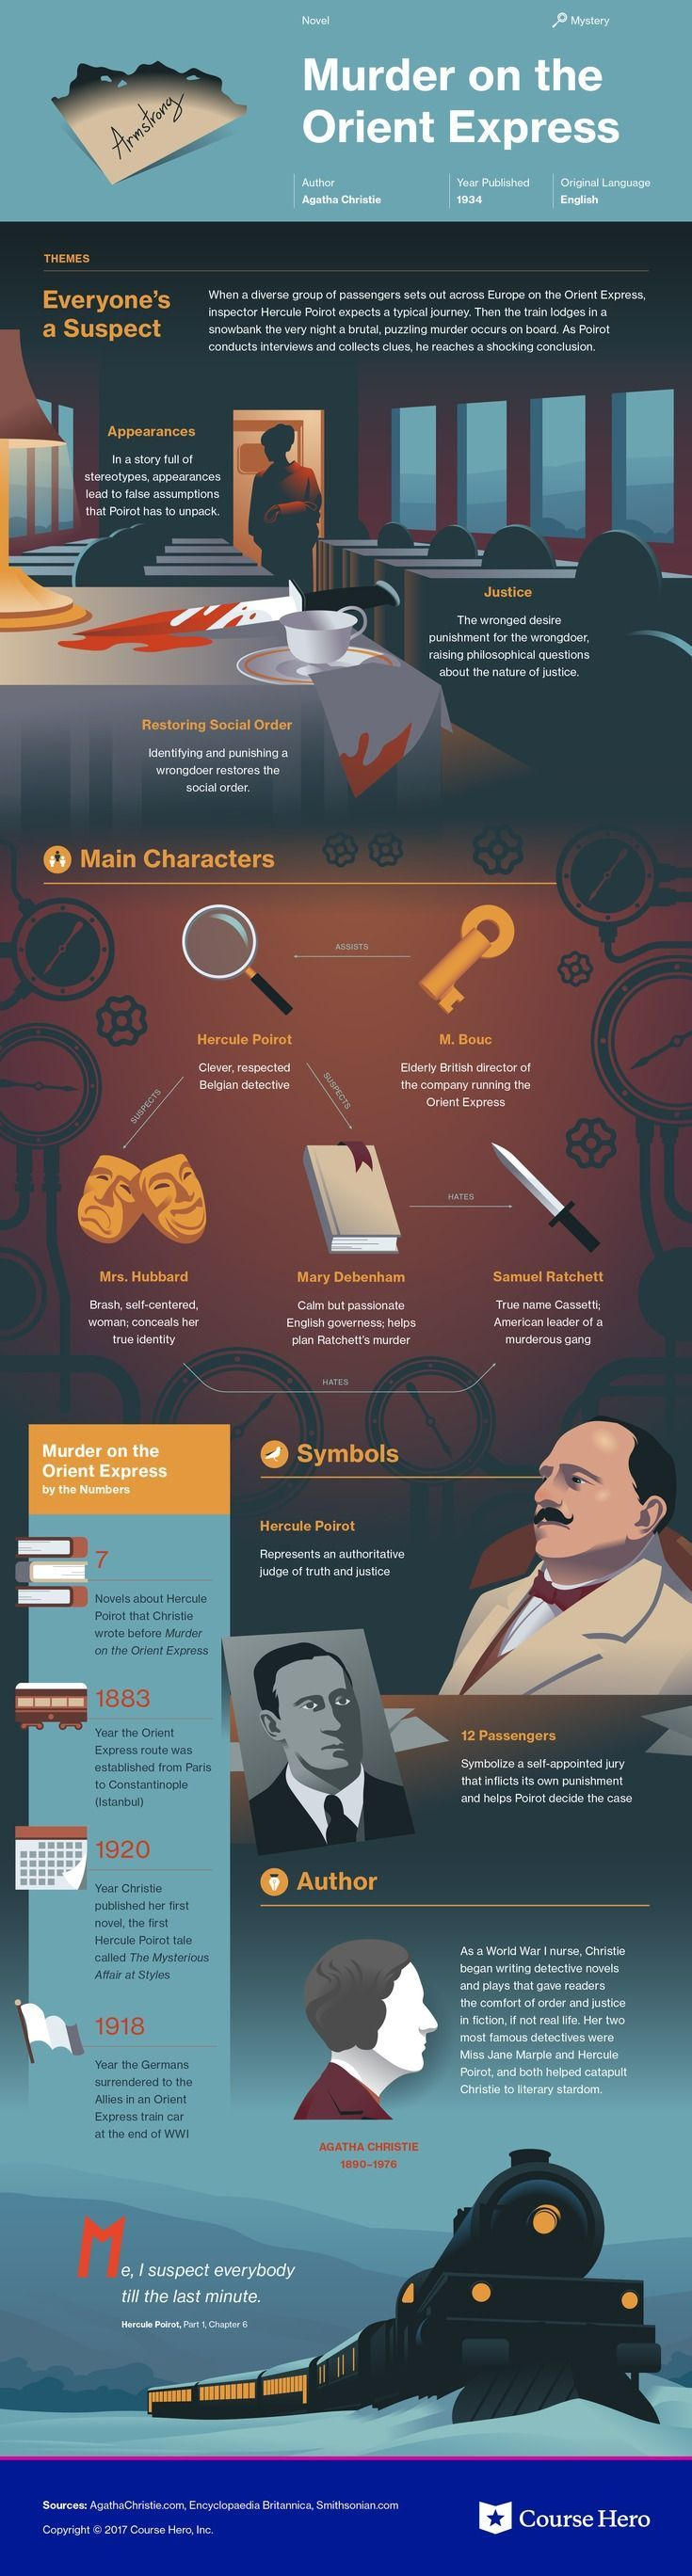 This @CourseHero infographic on Murder on the Orient Express is both visually stunning and informative!